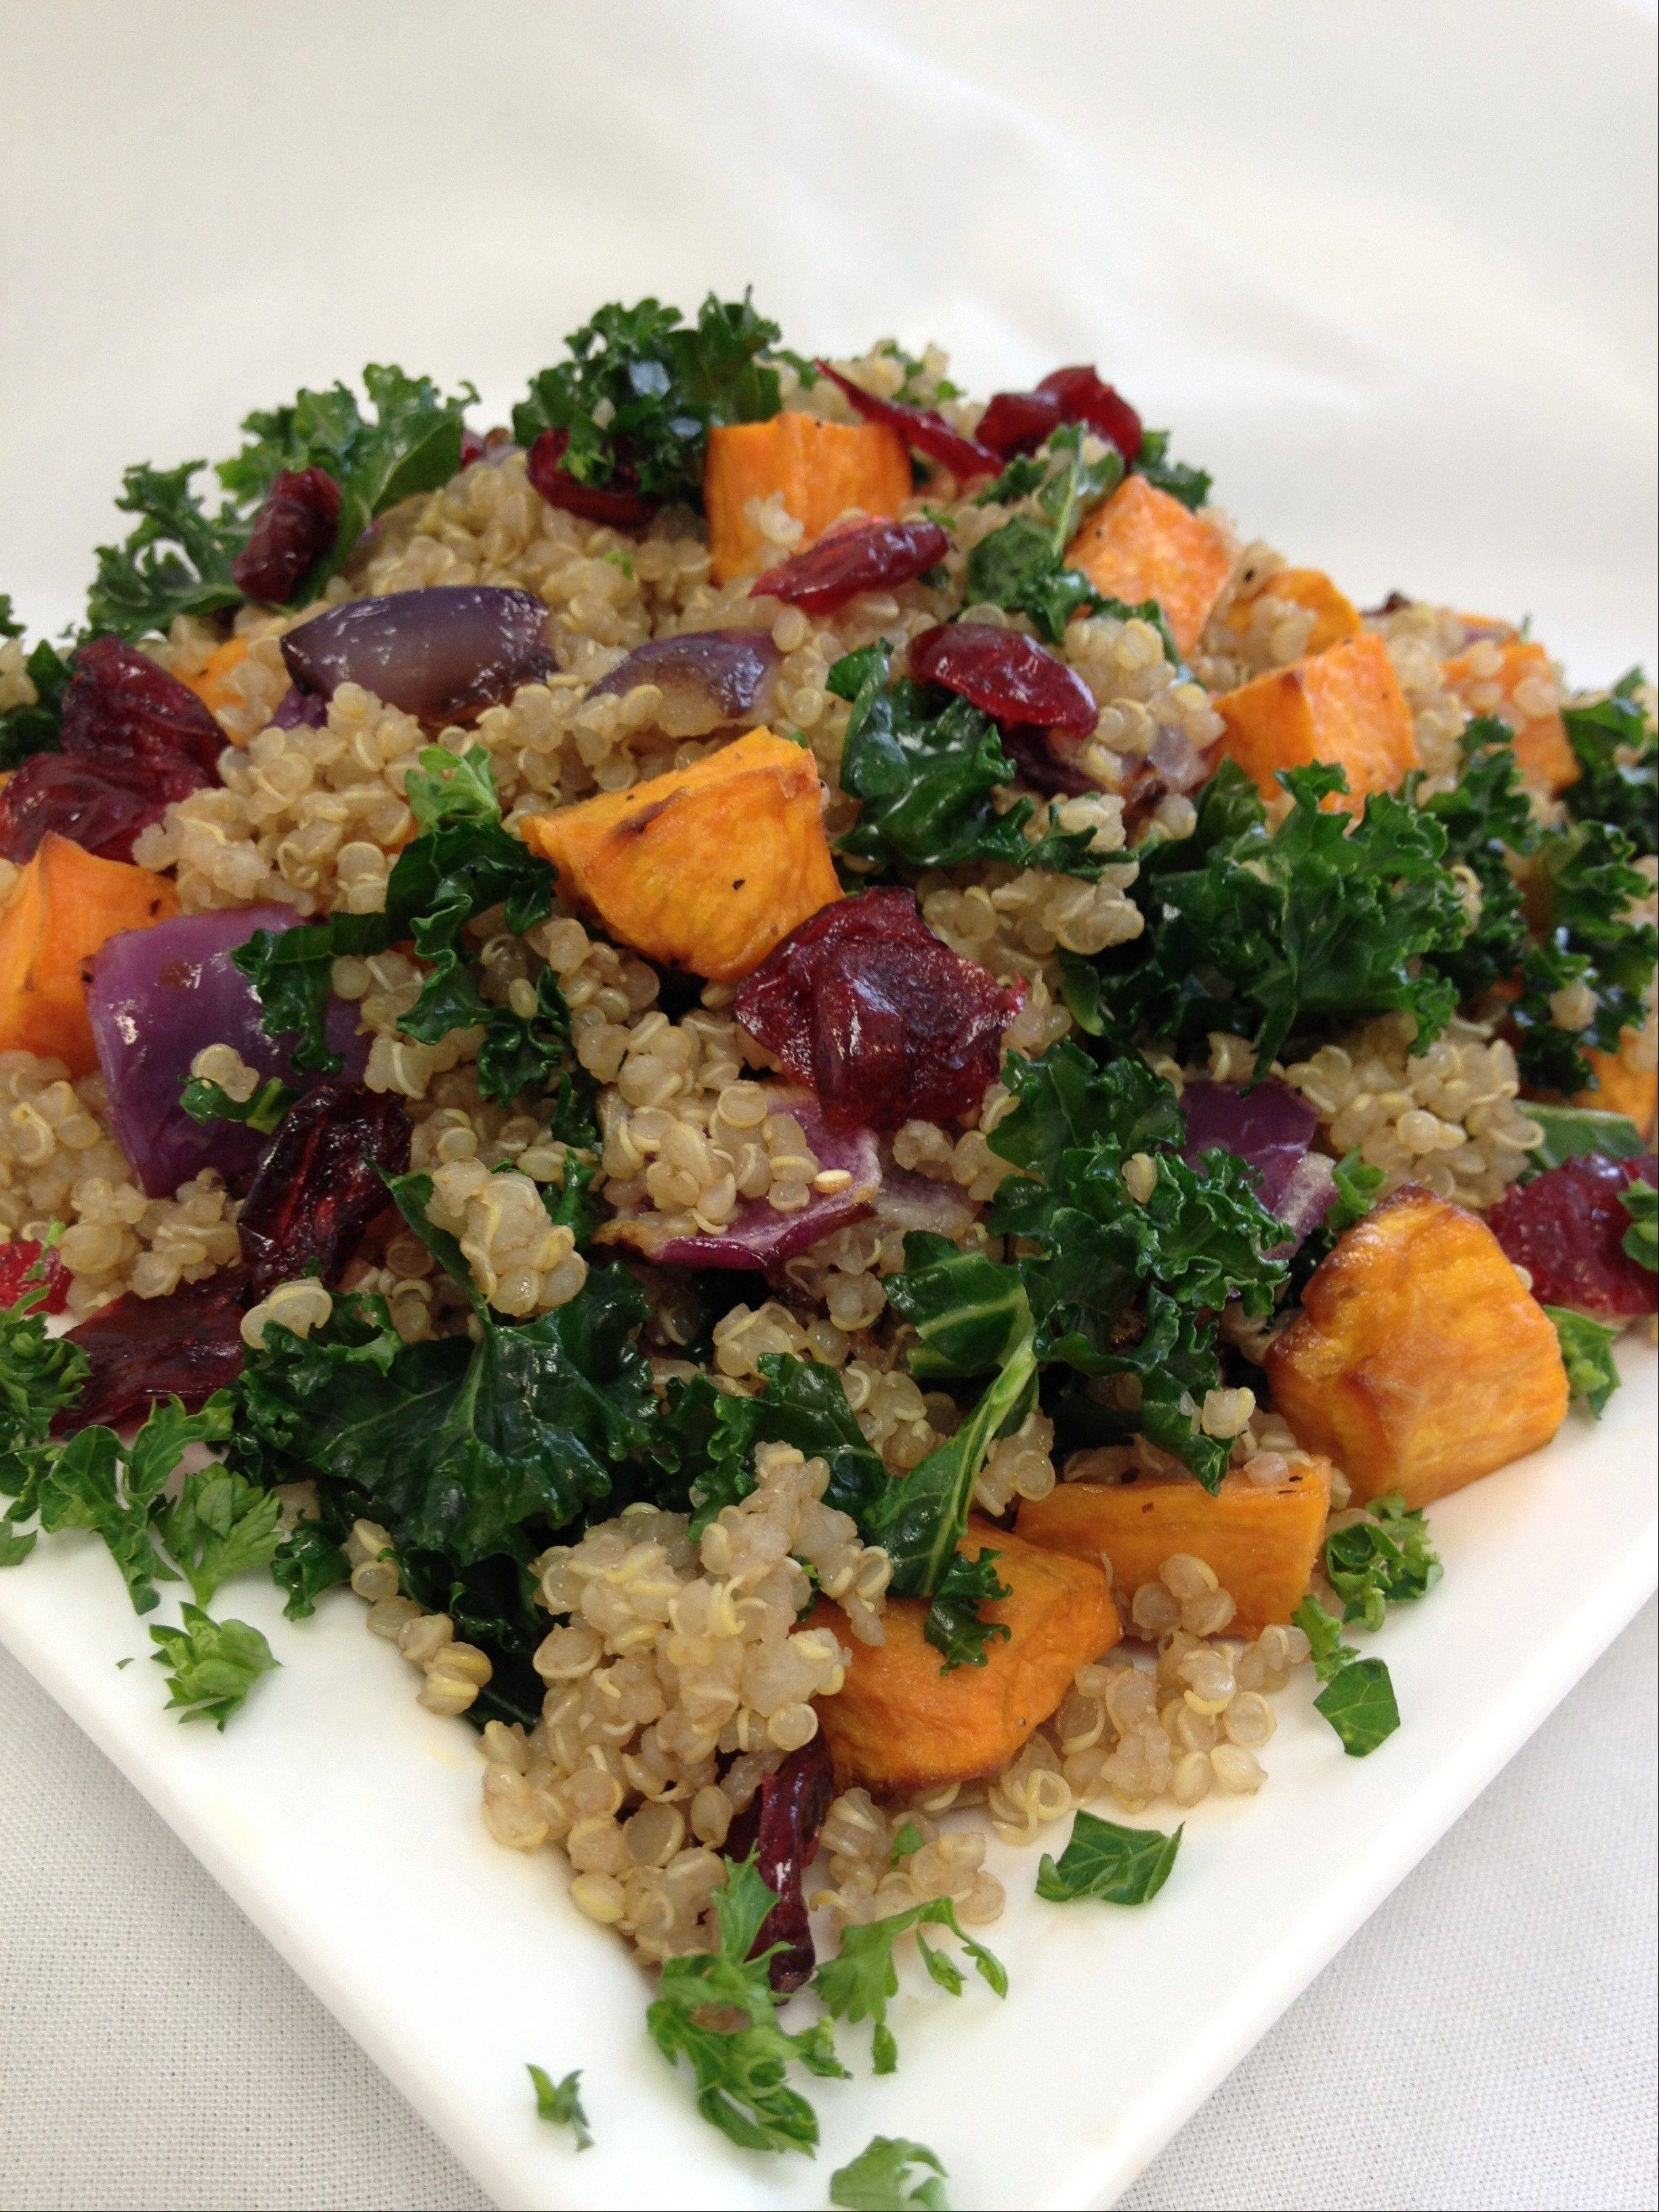 Whole grain quinoa combined with potatoes and vegetables comes to the table as a hearty side salad or a meatless entree.